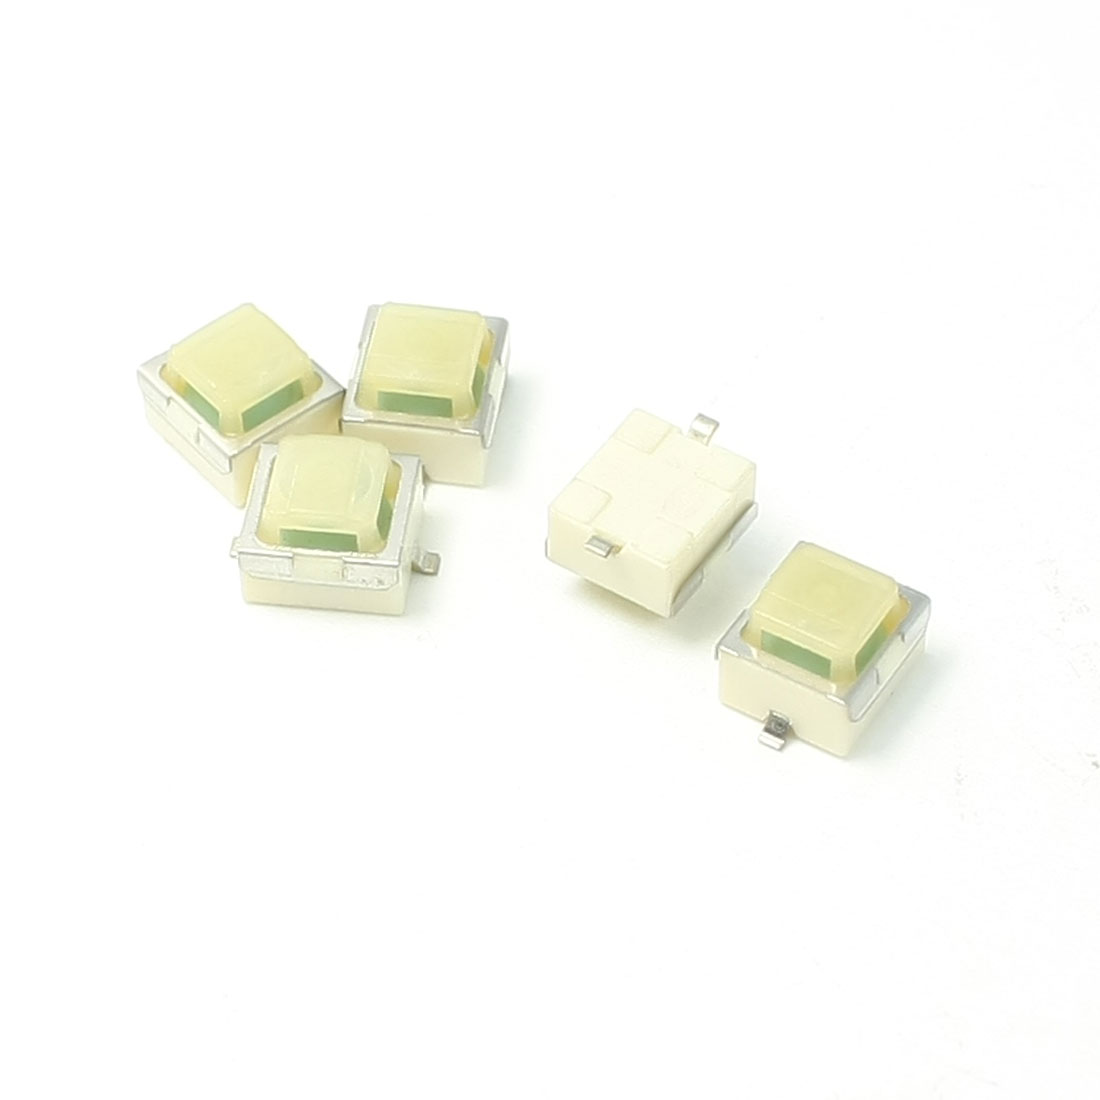 5pcs 6.5x6.3x5mm Momentary Action Square Button Tactile Tact Switch DC 12V 0.2A